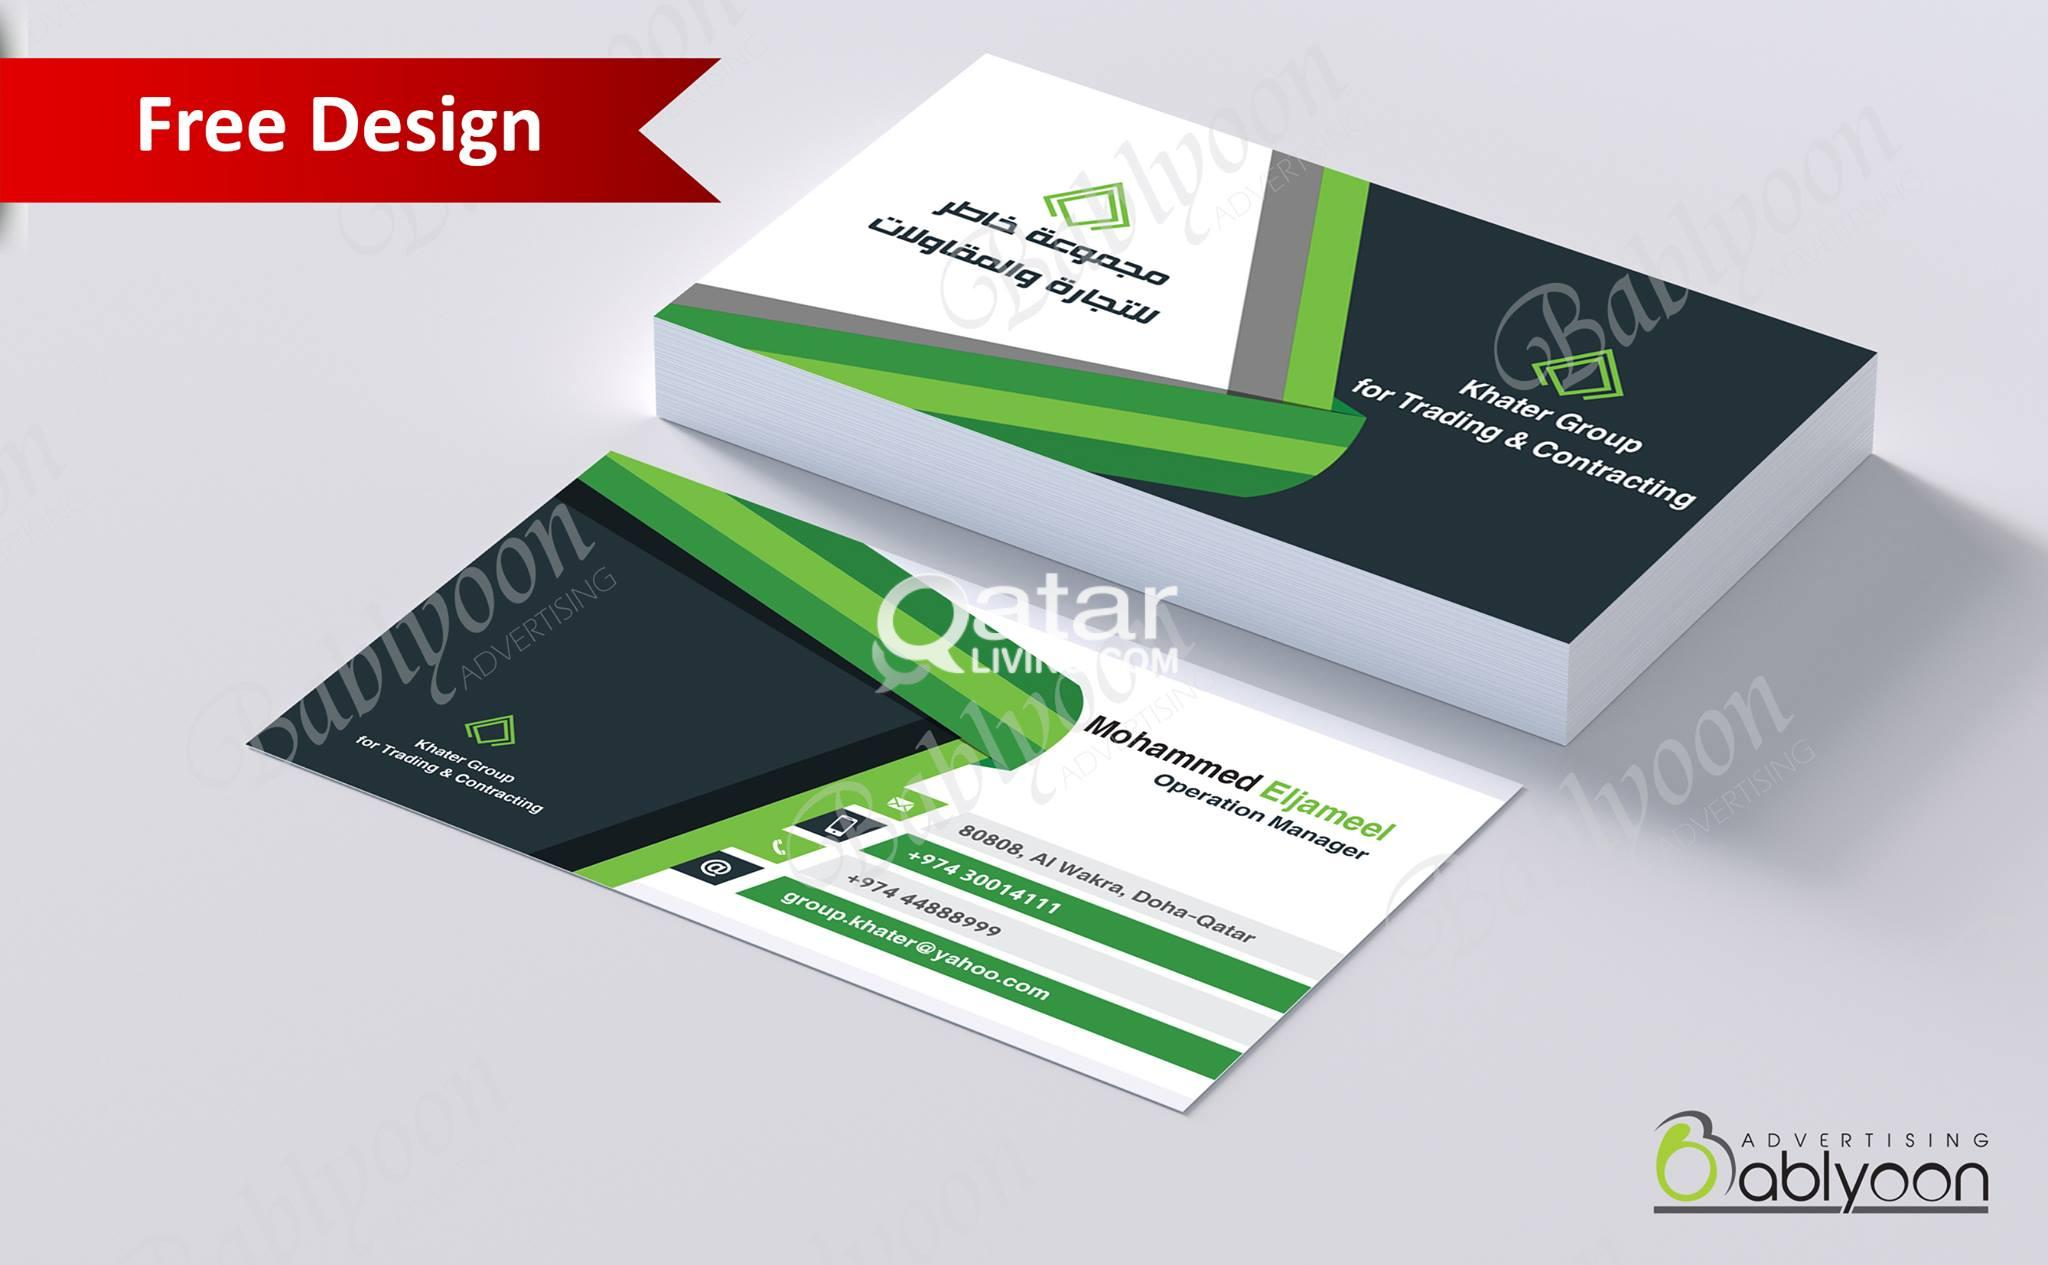 Business card printing within 15 minutes qatar living title title title title title title title information free design for business card reheart Image collections